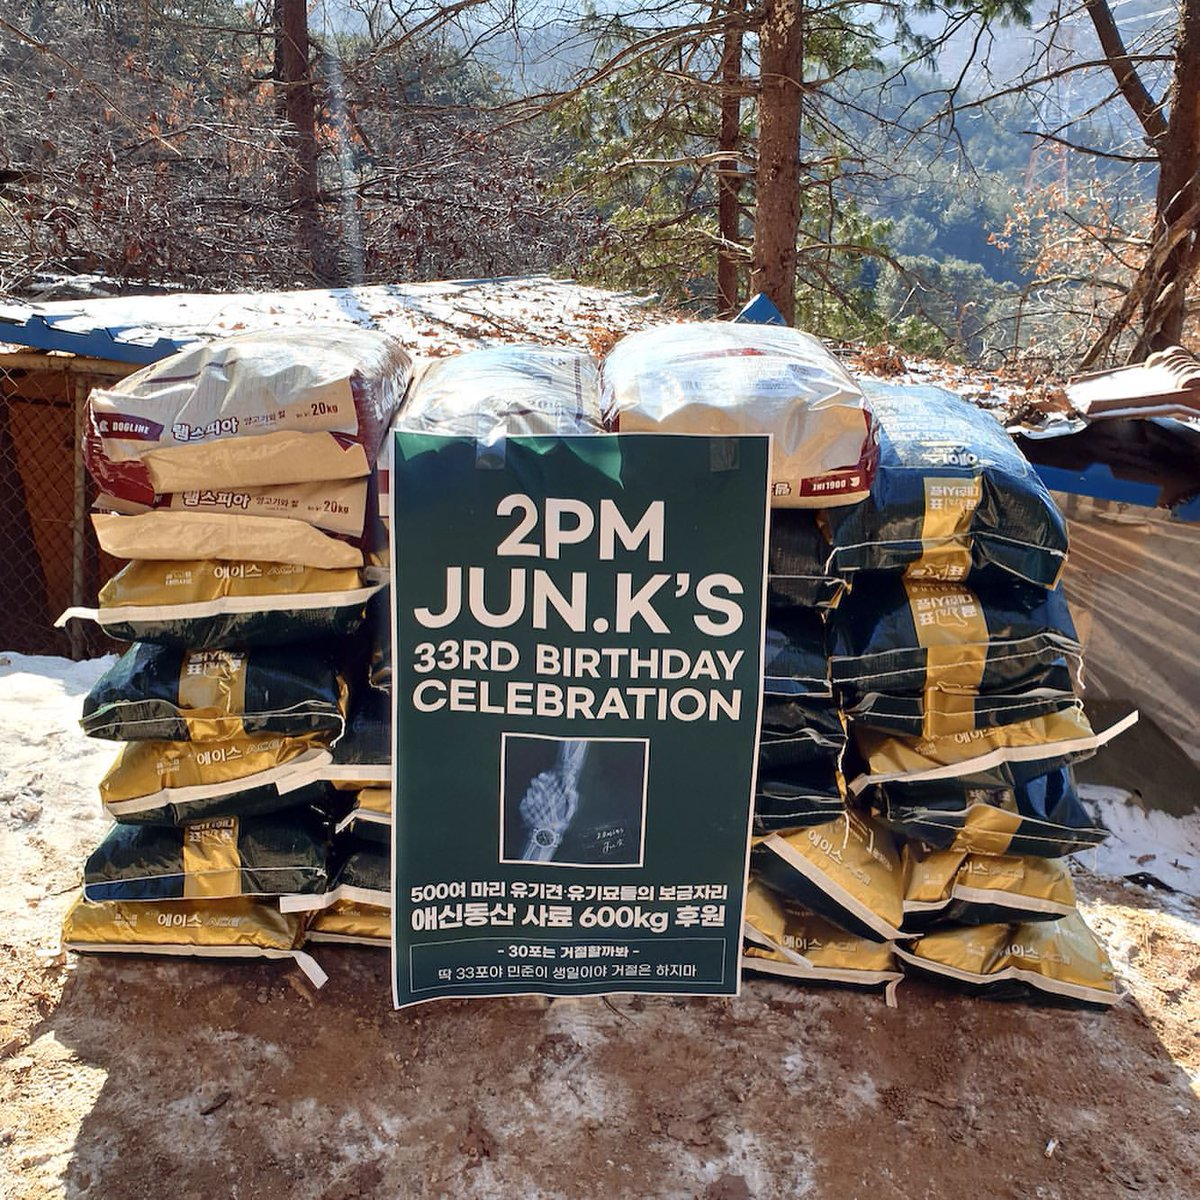 [Trans] 210115 Animal food support from fans for @Jun2daKAY's birthday celebration  From aeshindogscats's IG   #Jun_K #2PM